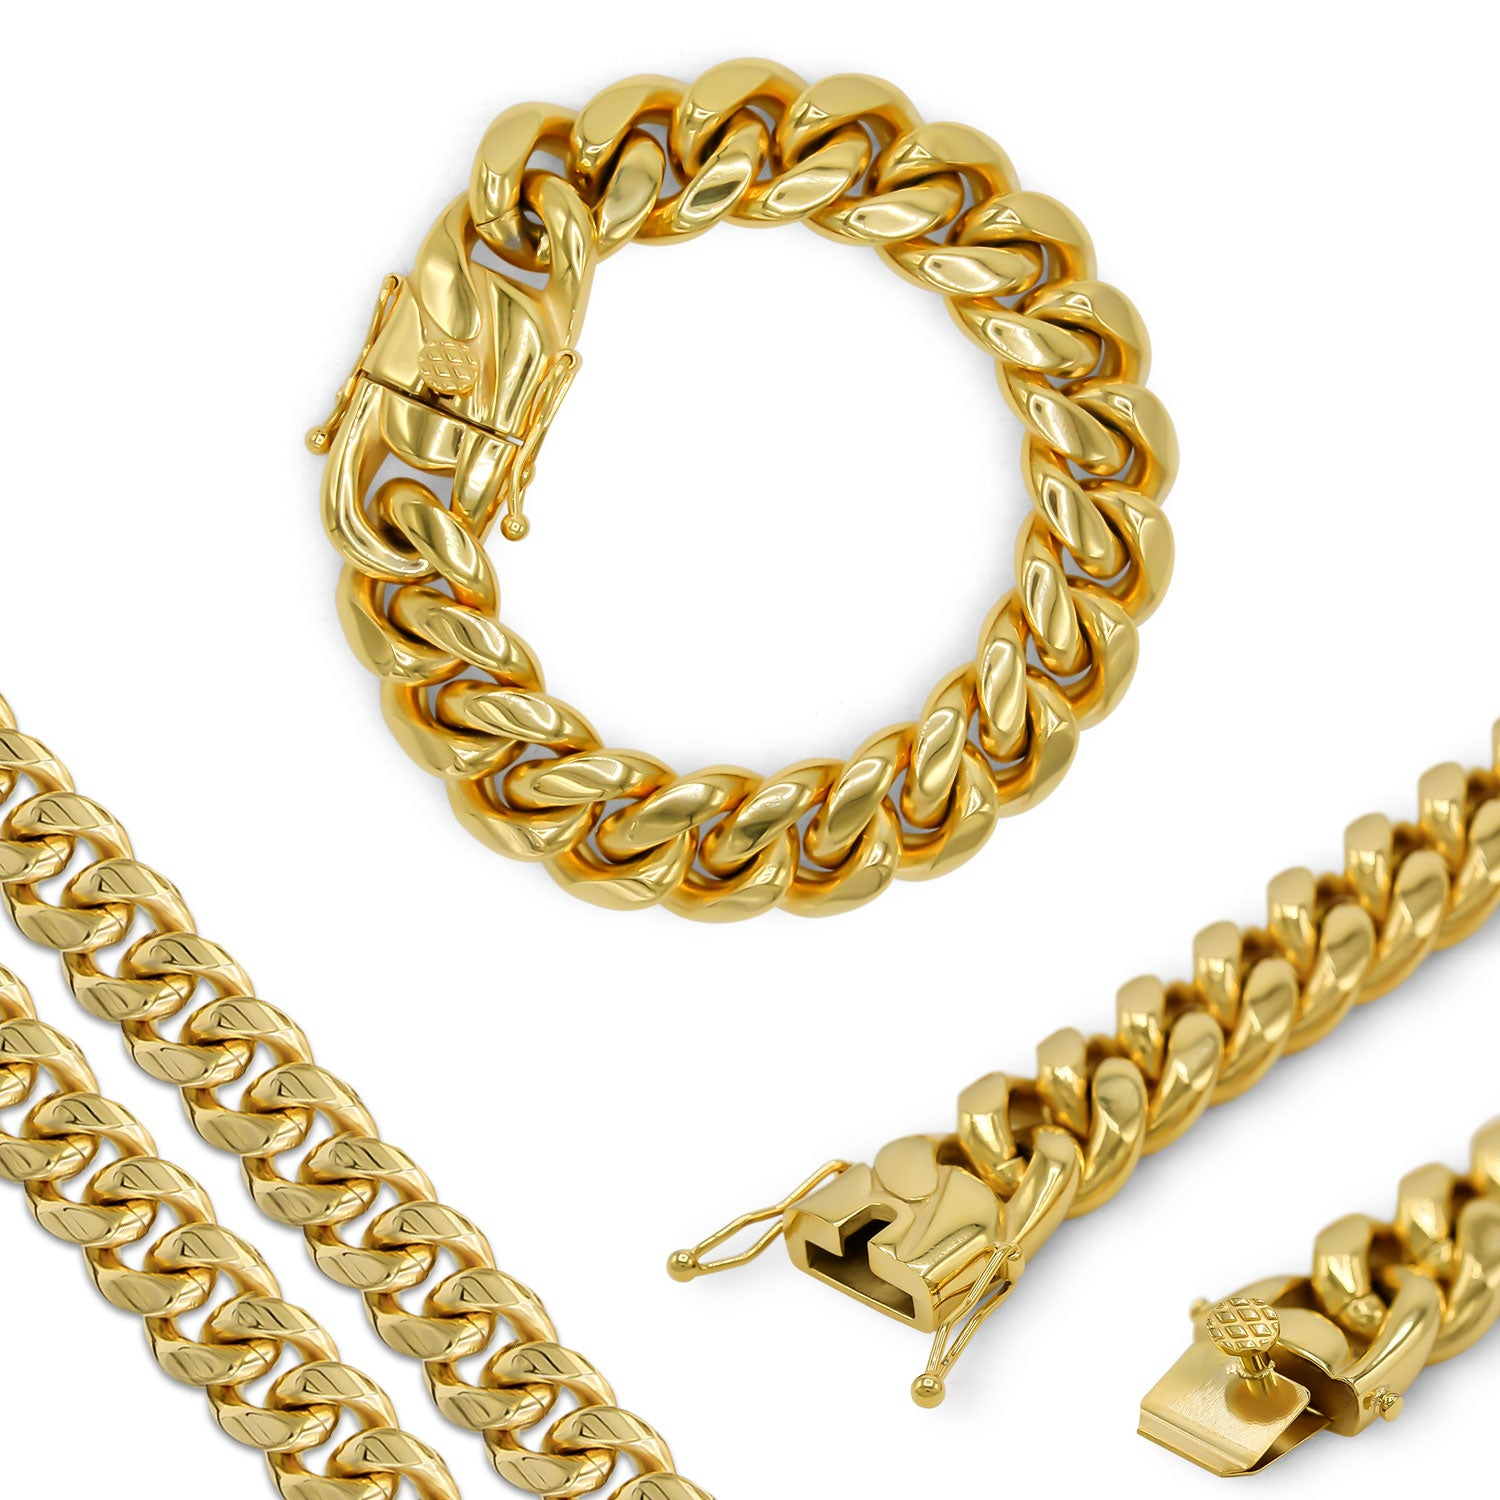 "Cuban Link Chain Curb 18K Gold Plated Bracelet 9.5"" Stainless Steel"